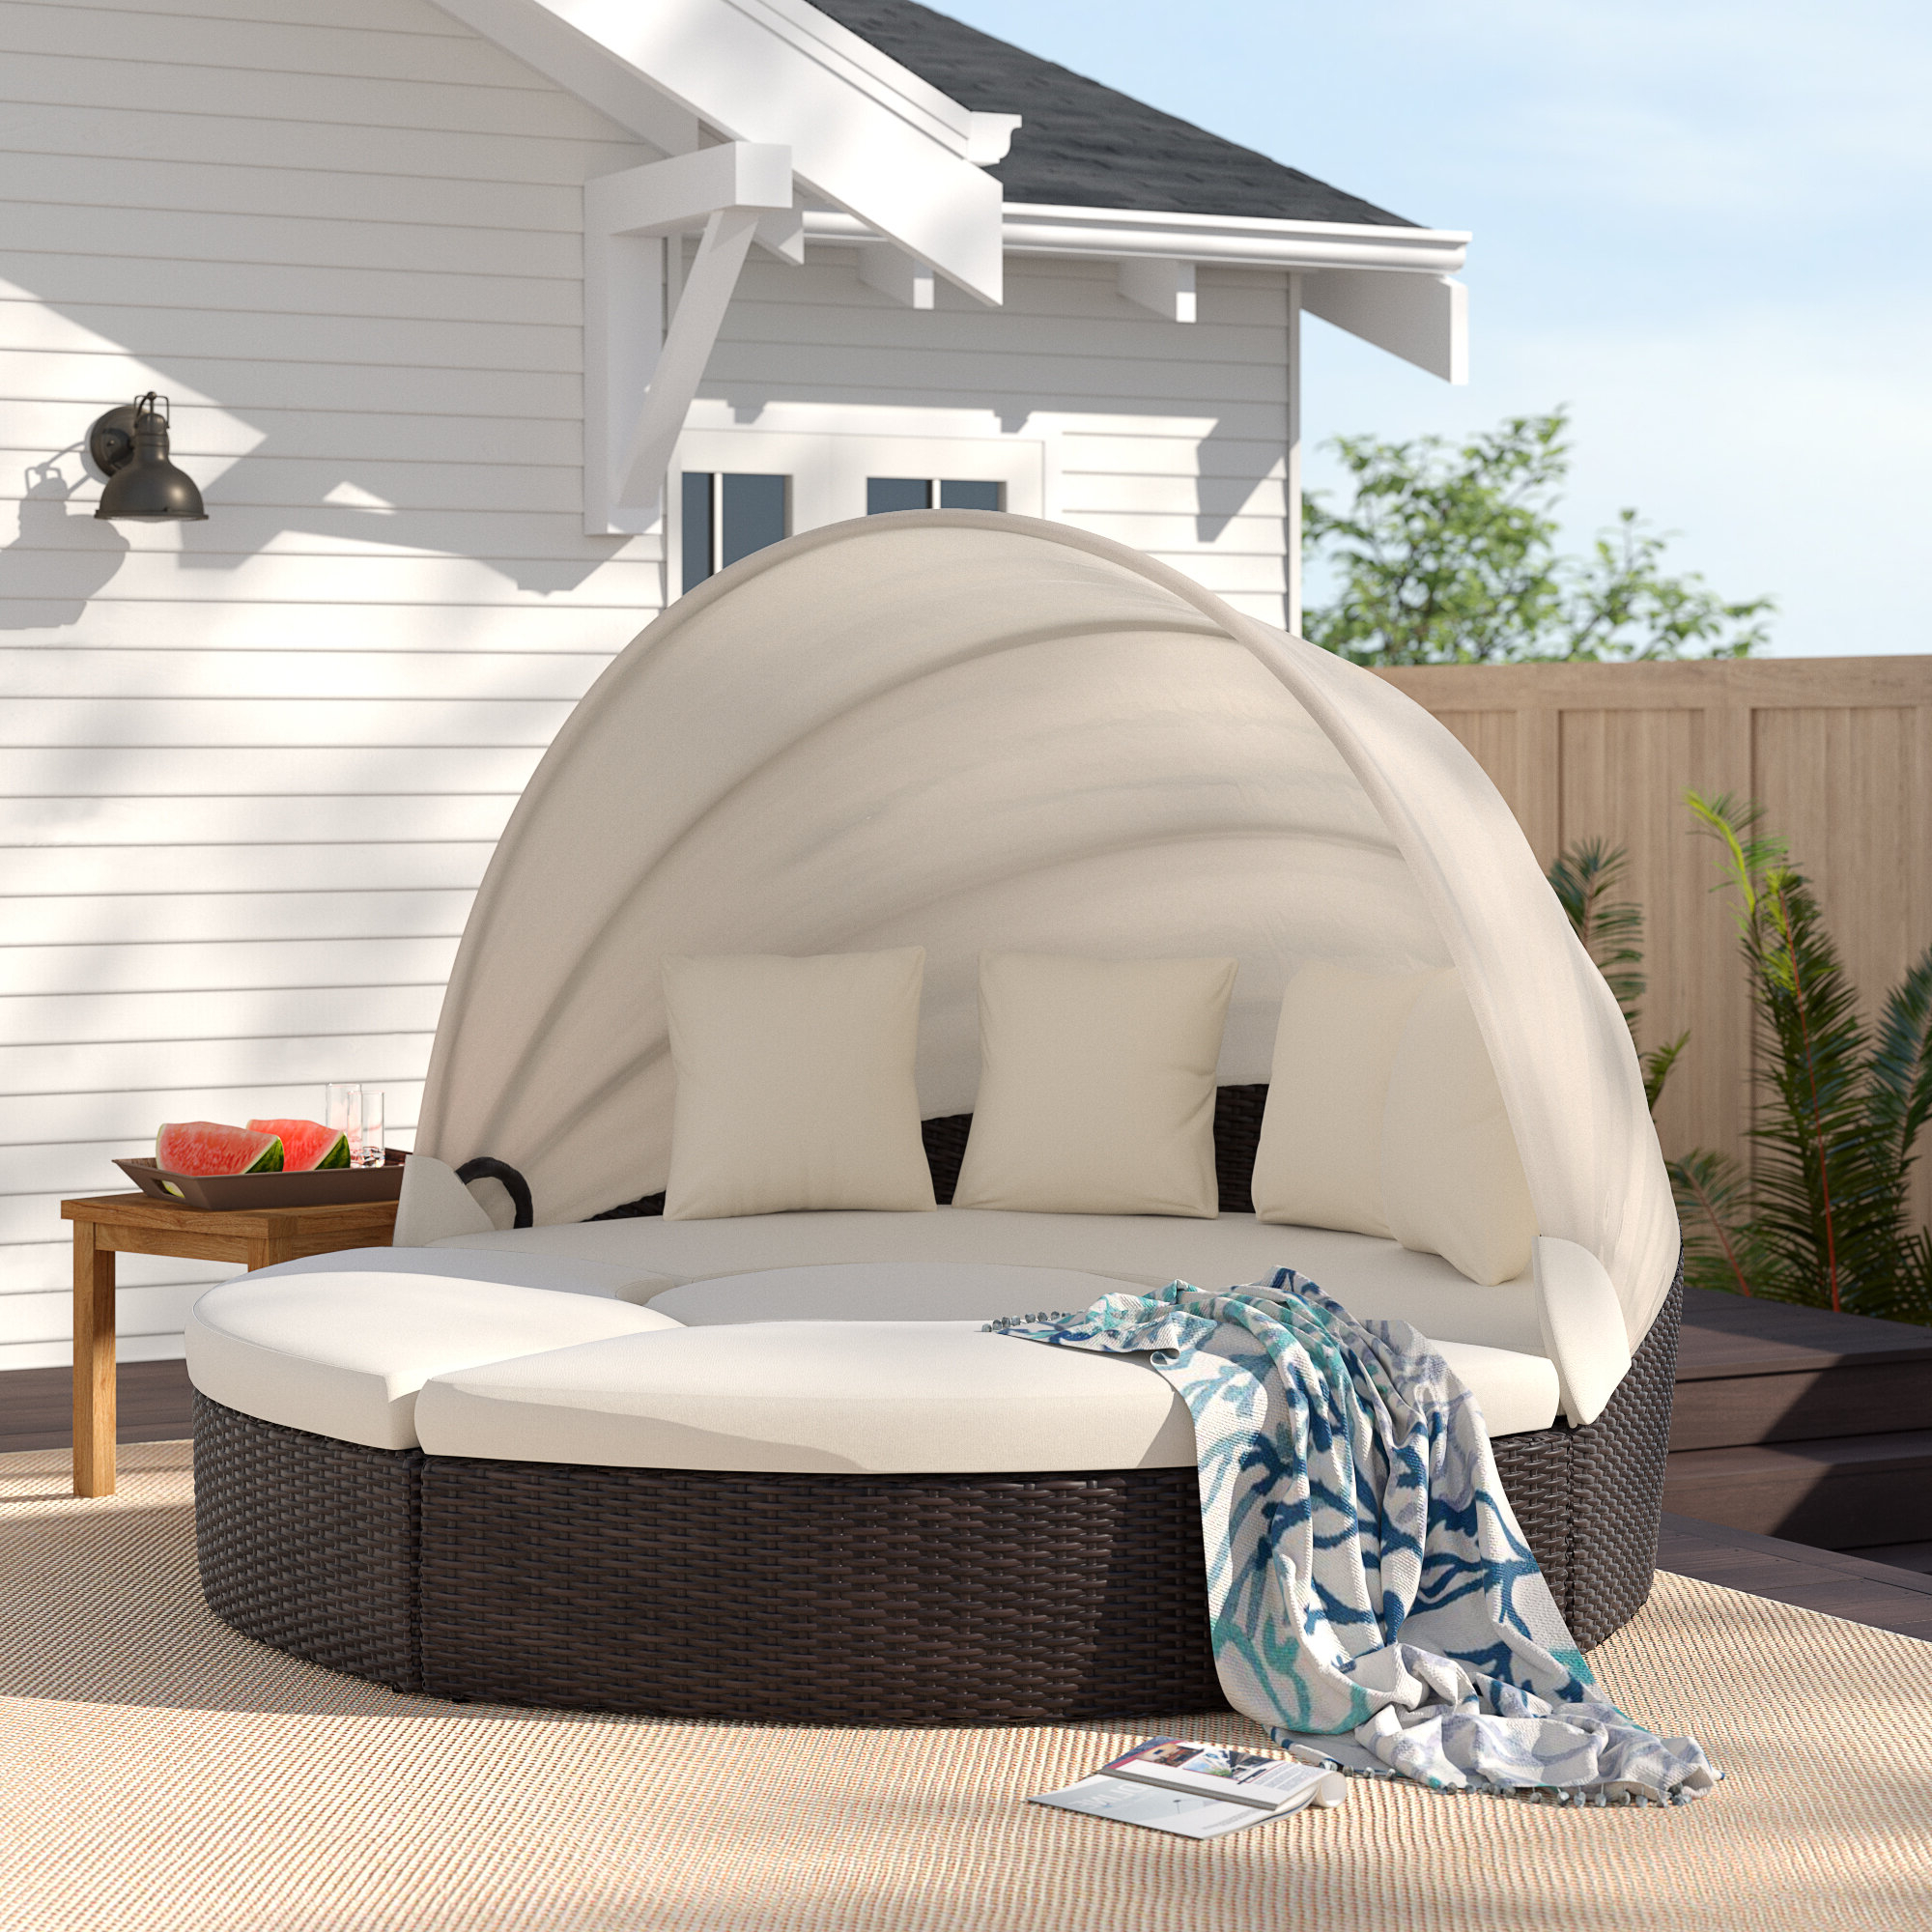 2020 Harlow Patio Daybeds With Cushions In Antigua Patio Daybed With Cushions (View 1 of 20)